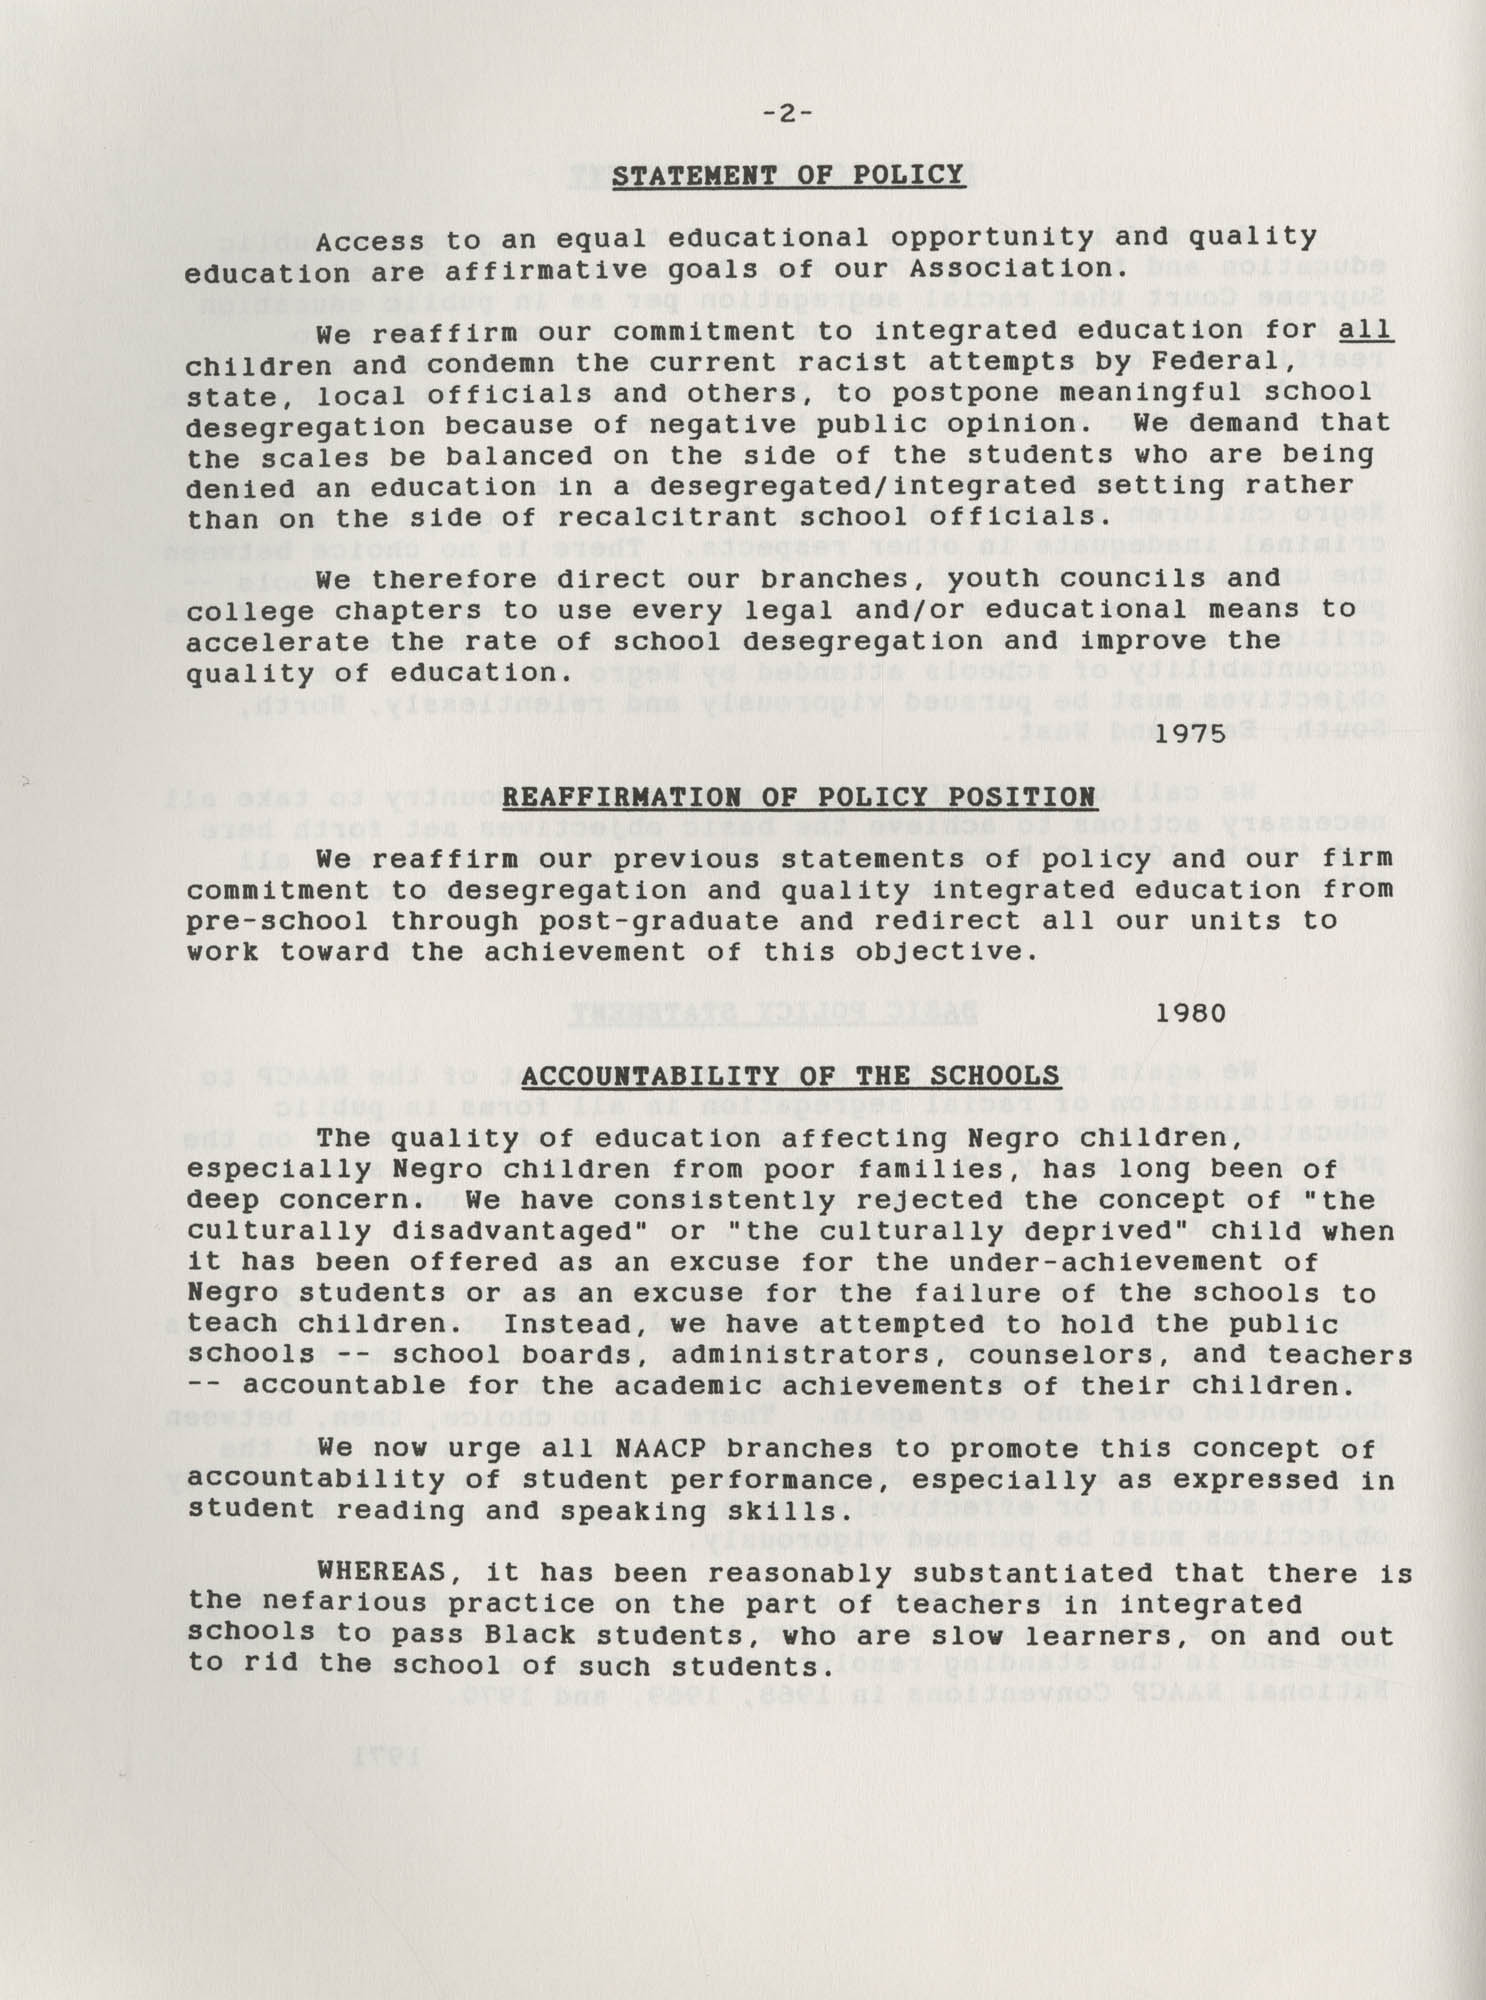 NAACP Resolutions on Education, 1970-1989, Index to Education Resolutions, Page 2